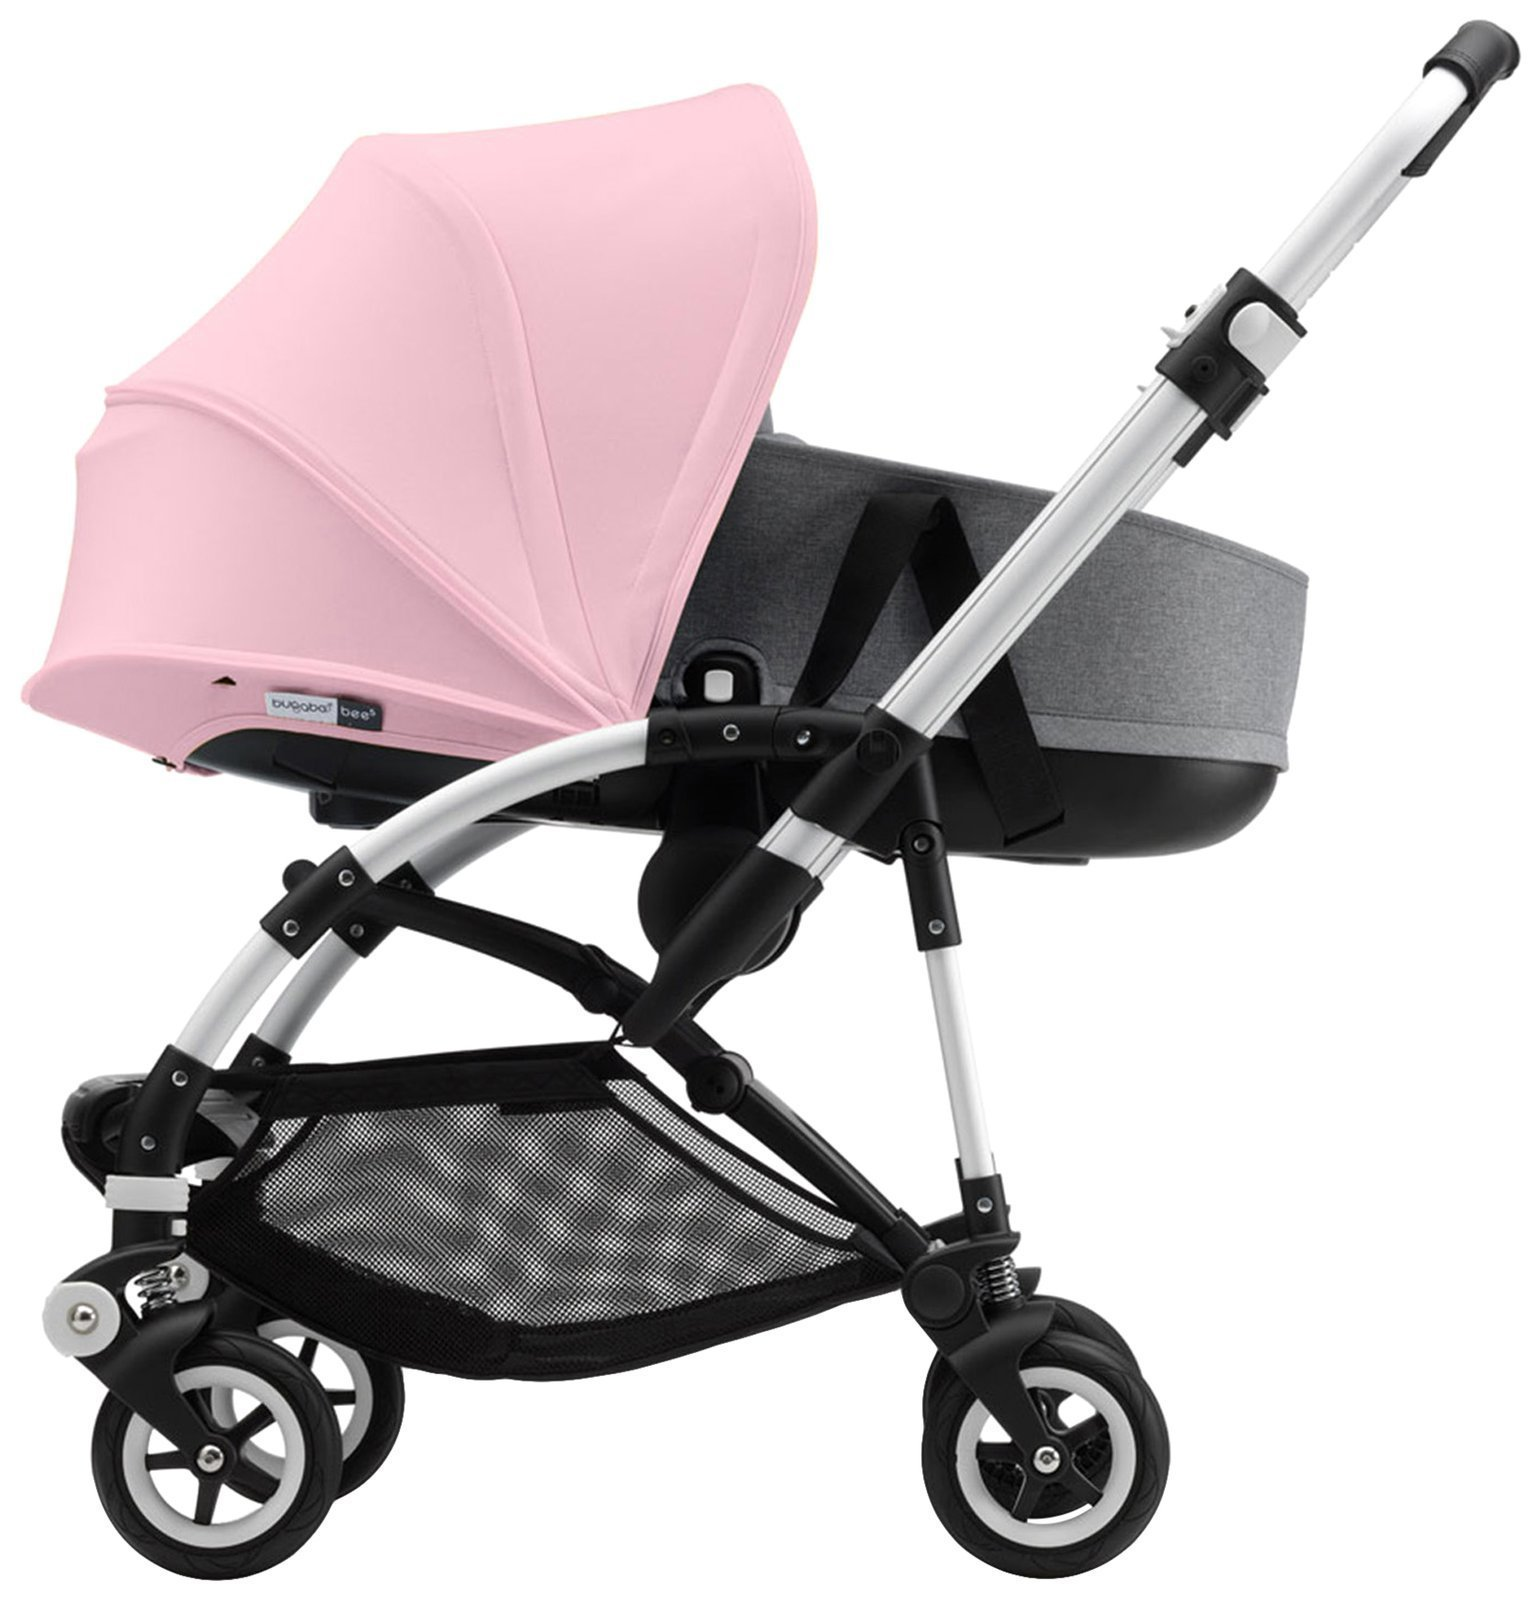 Bugaboo Bee5 Sun Canopy, Soft Pink - Extendable Sun Shade for Full Weather Protection, Machine Washable by Bugaboo (Image #2)